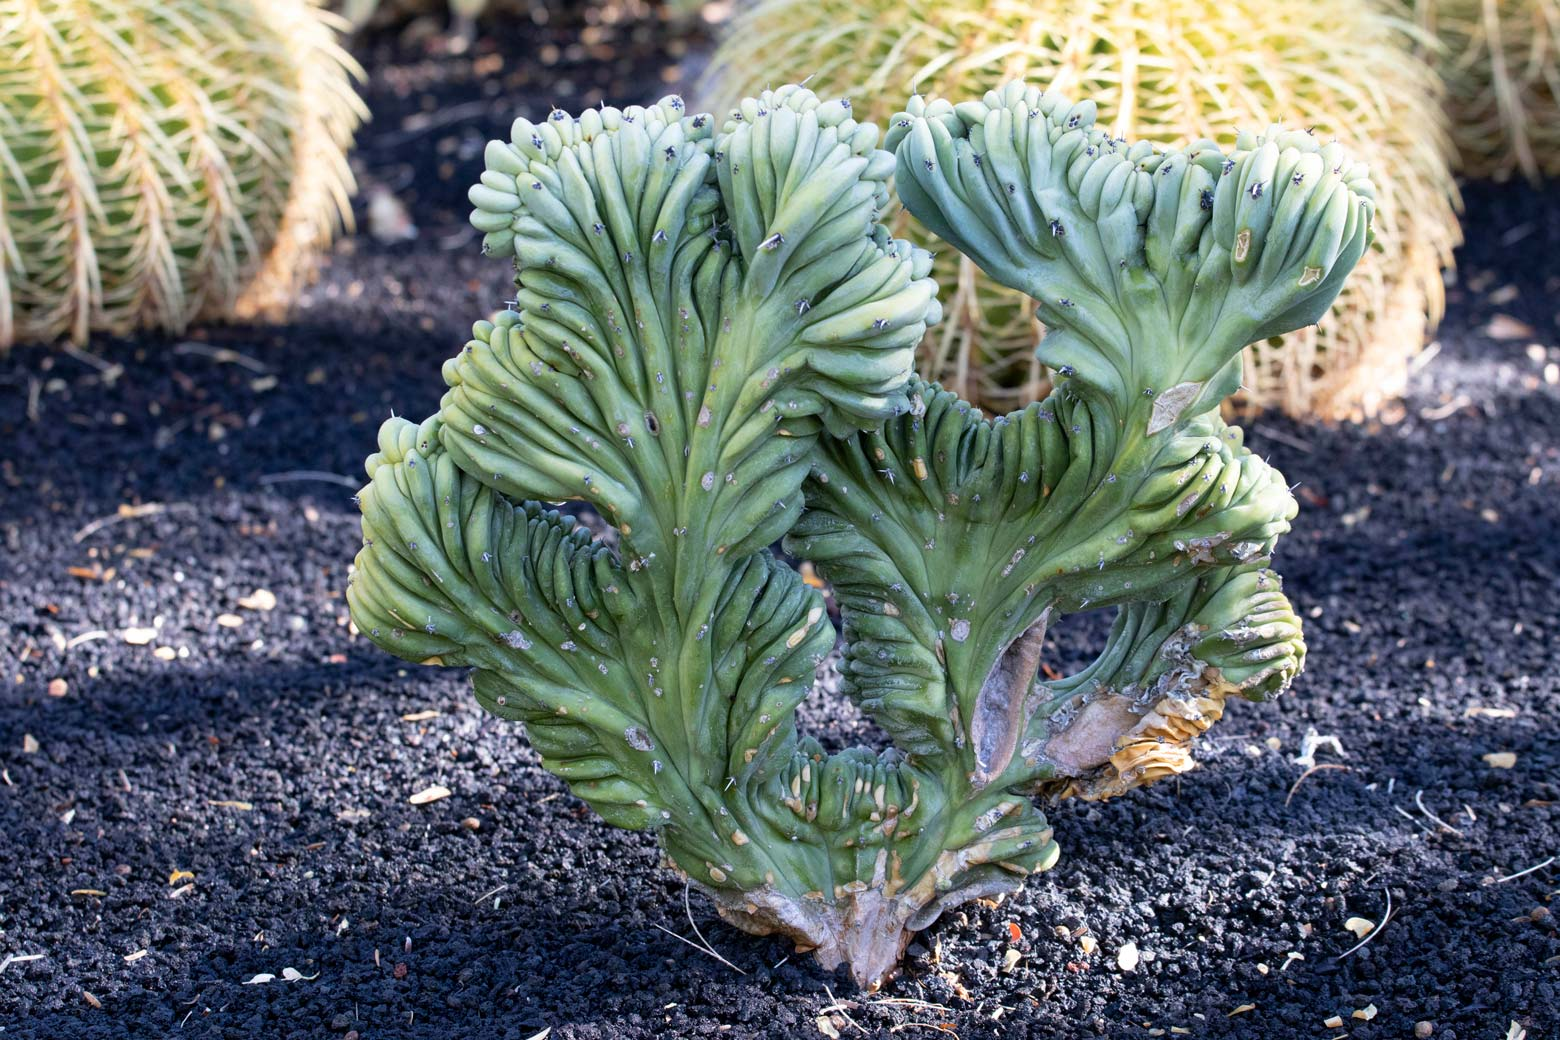 A Crested Blue Flame cactus in the specimen beds at Sunnylands Center and Gardens.